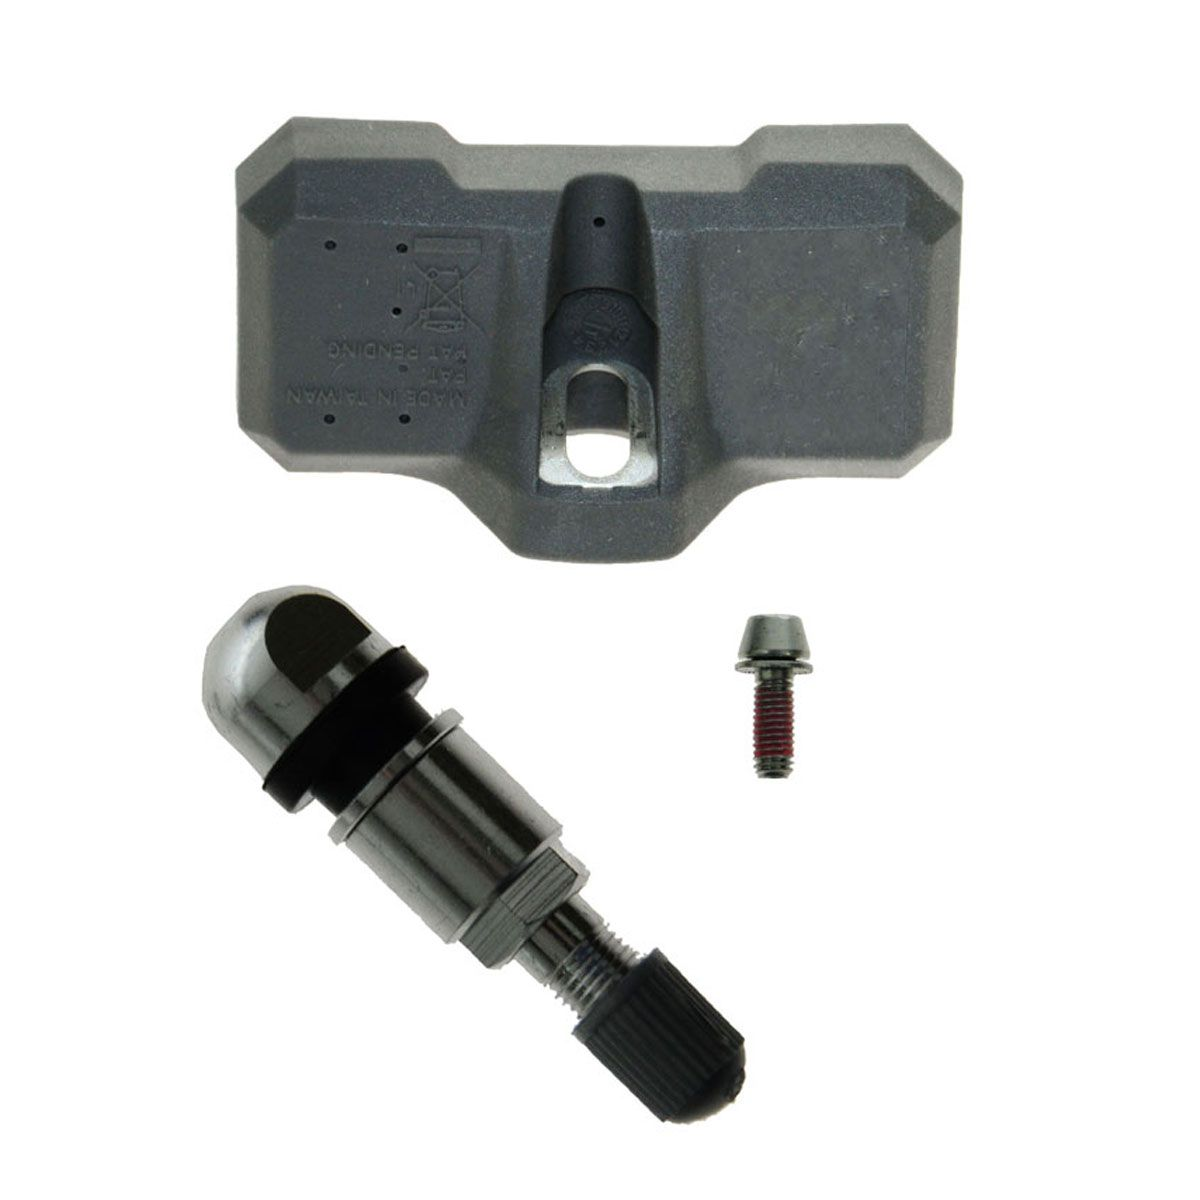 Dorman Tire Pressure Monitor Sensor TPMS New for ...